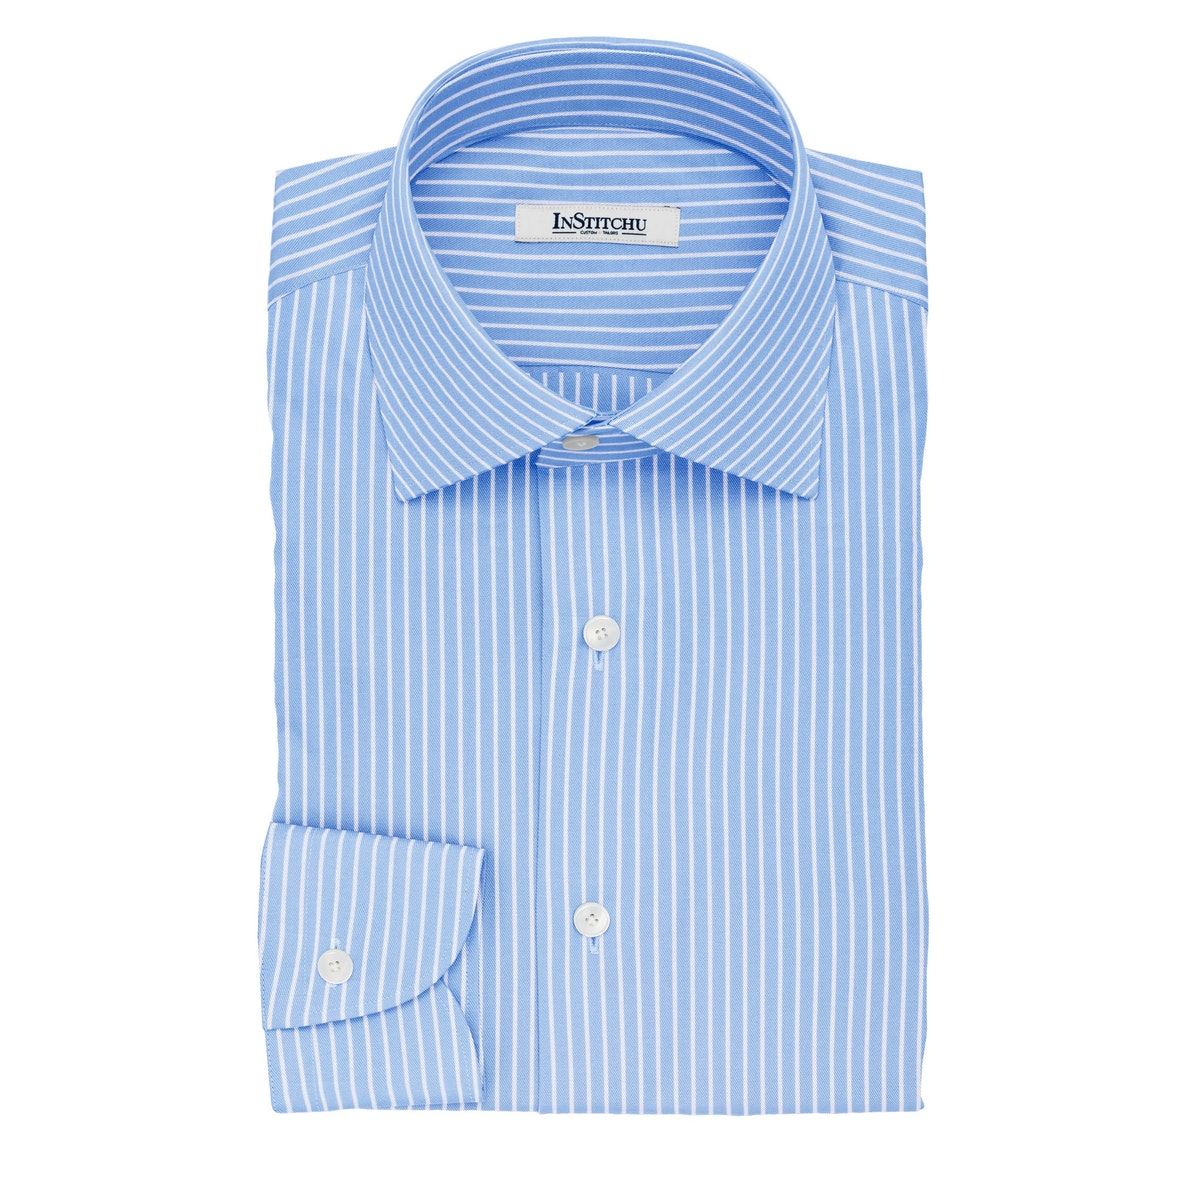 InStitchu Collection The Dahl Blue and White Striped Cotton Shirt